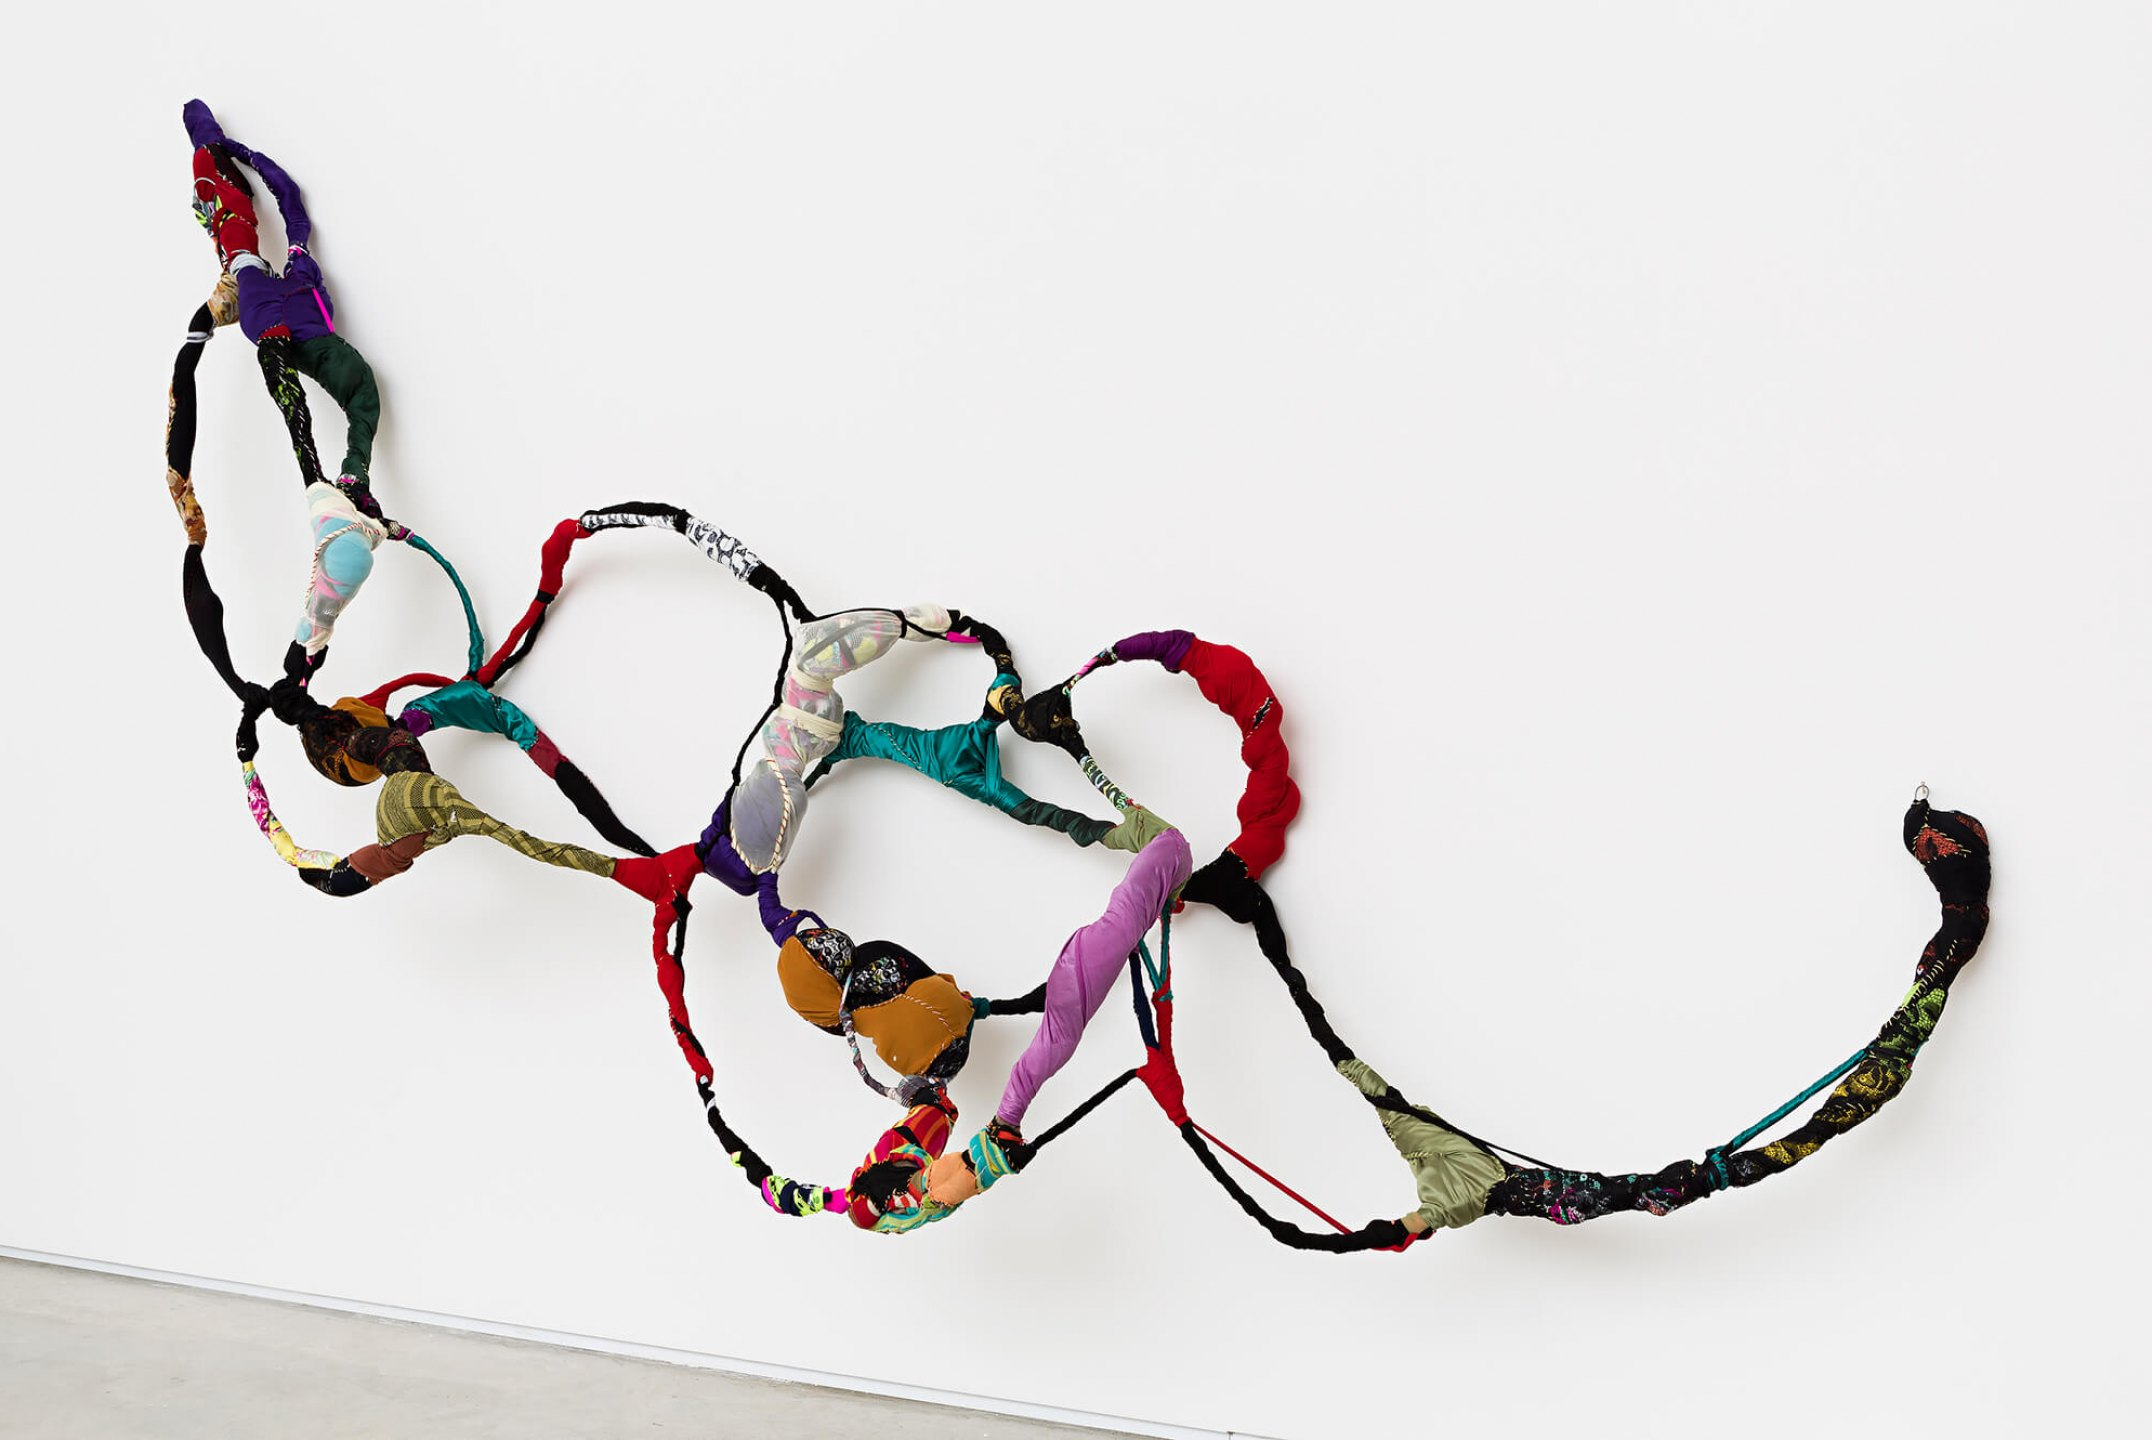 Sonia Gomes,<em>untitled, from Torção series</em>, 2015, sewing, moorings, different fabrics on wire, 430 × 120 × 50 cm - Mendes Wood DM